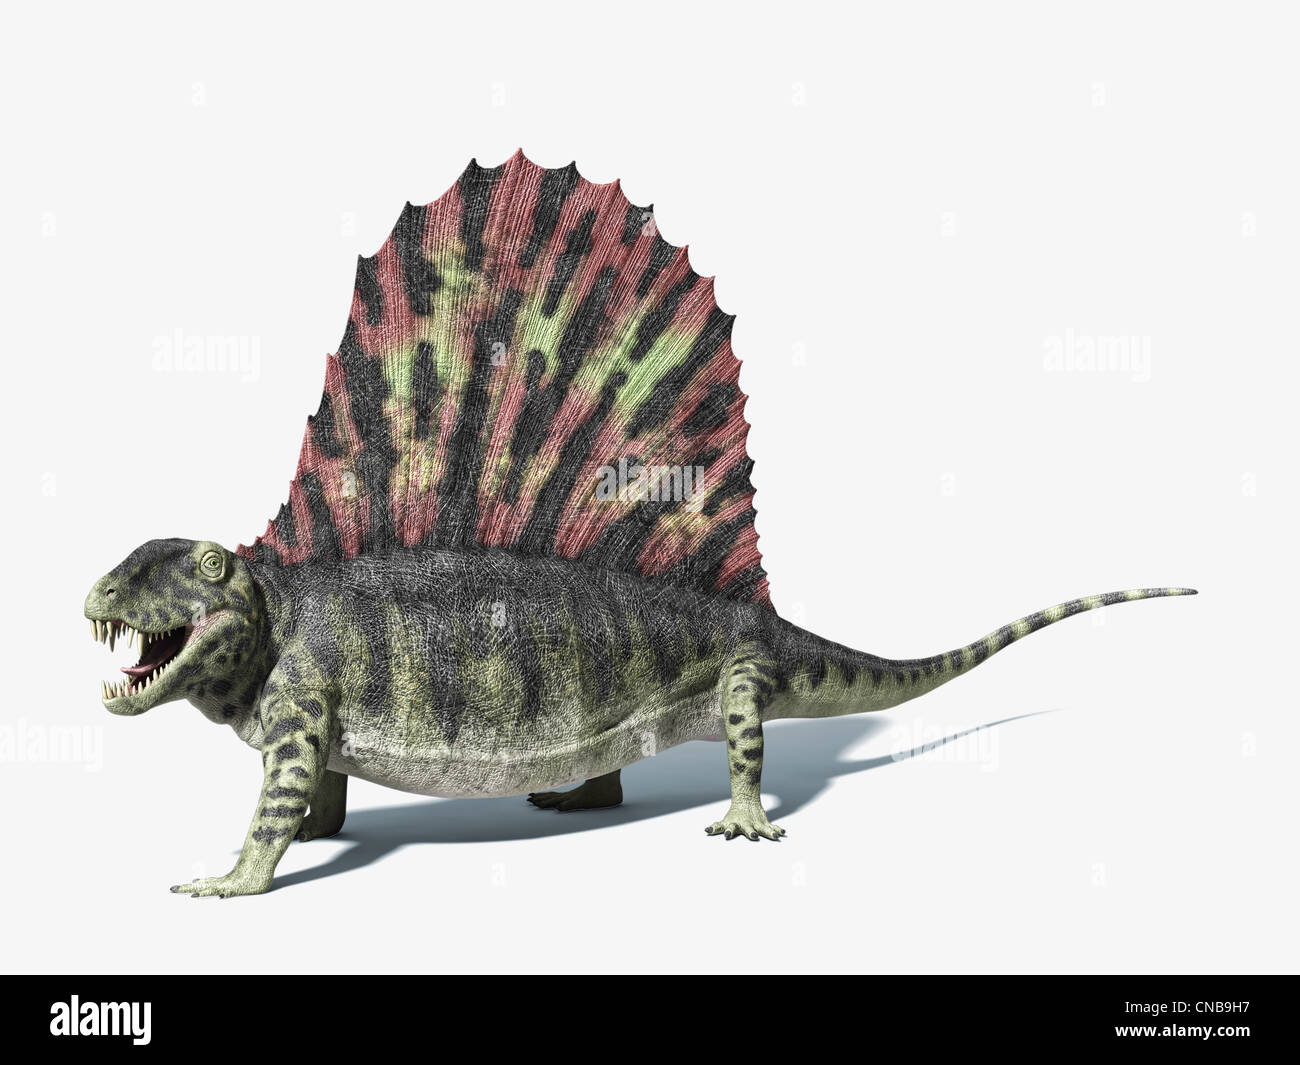 Dimetrodon dinosaur. very detailed and scientifically correct. On white background with dropped shadow and clipping - Stock Image